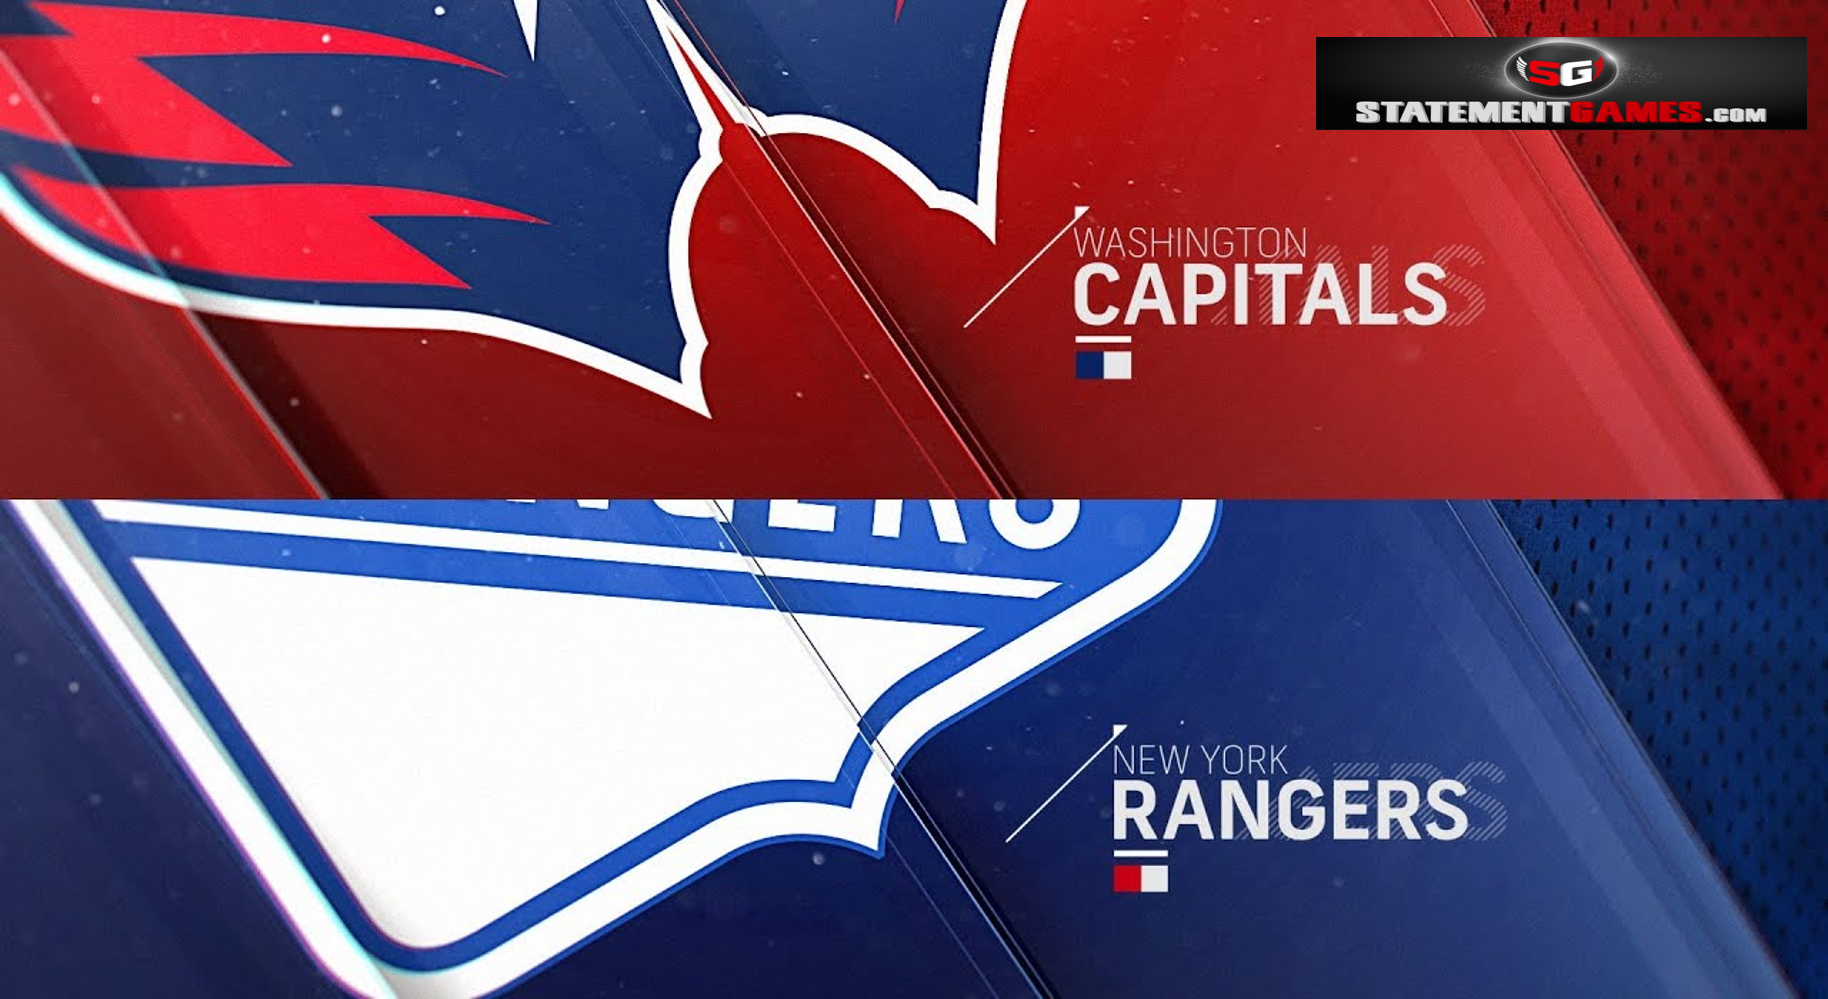 Washington Capitals Vs New York Rangers – NHL Game Day Preview: 02.04.2021